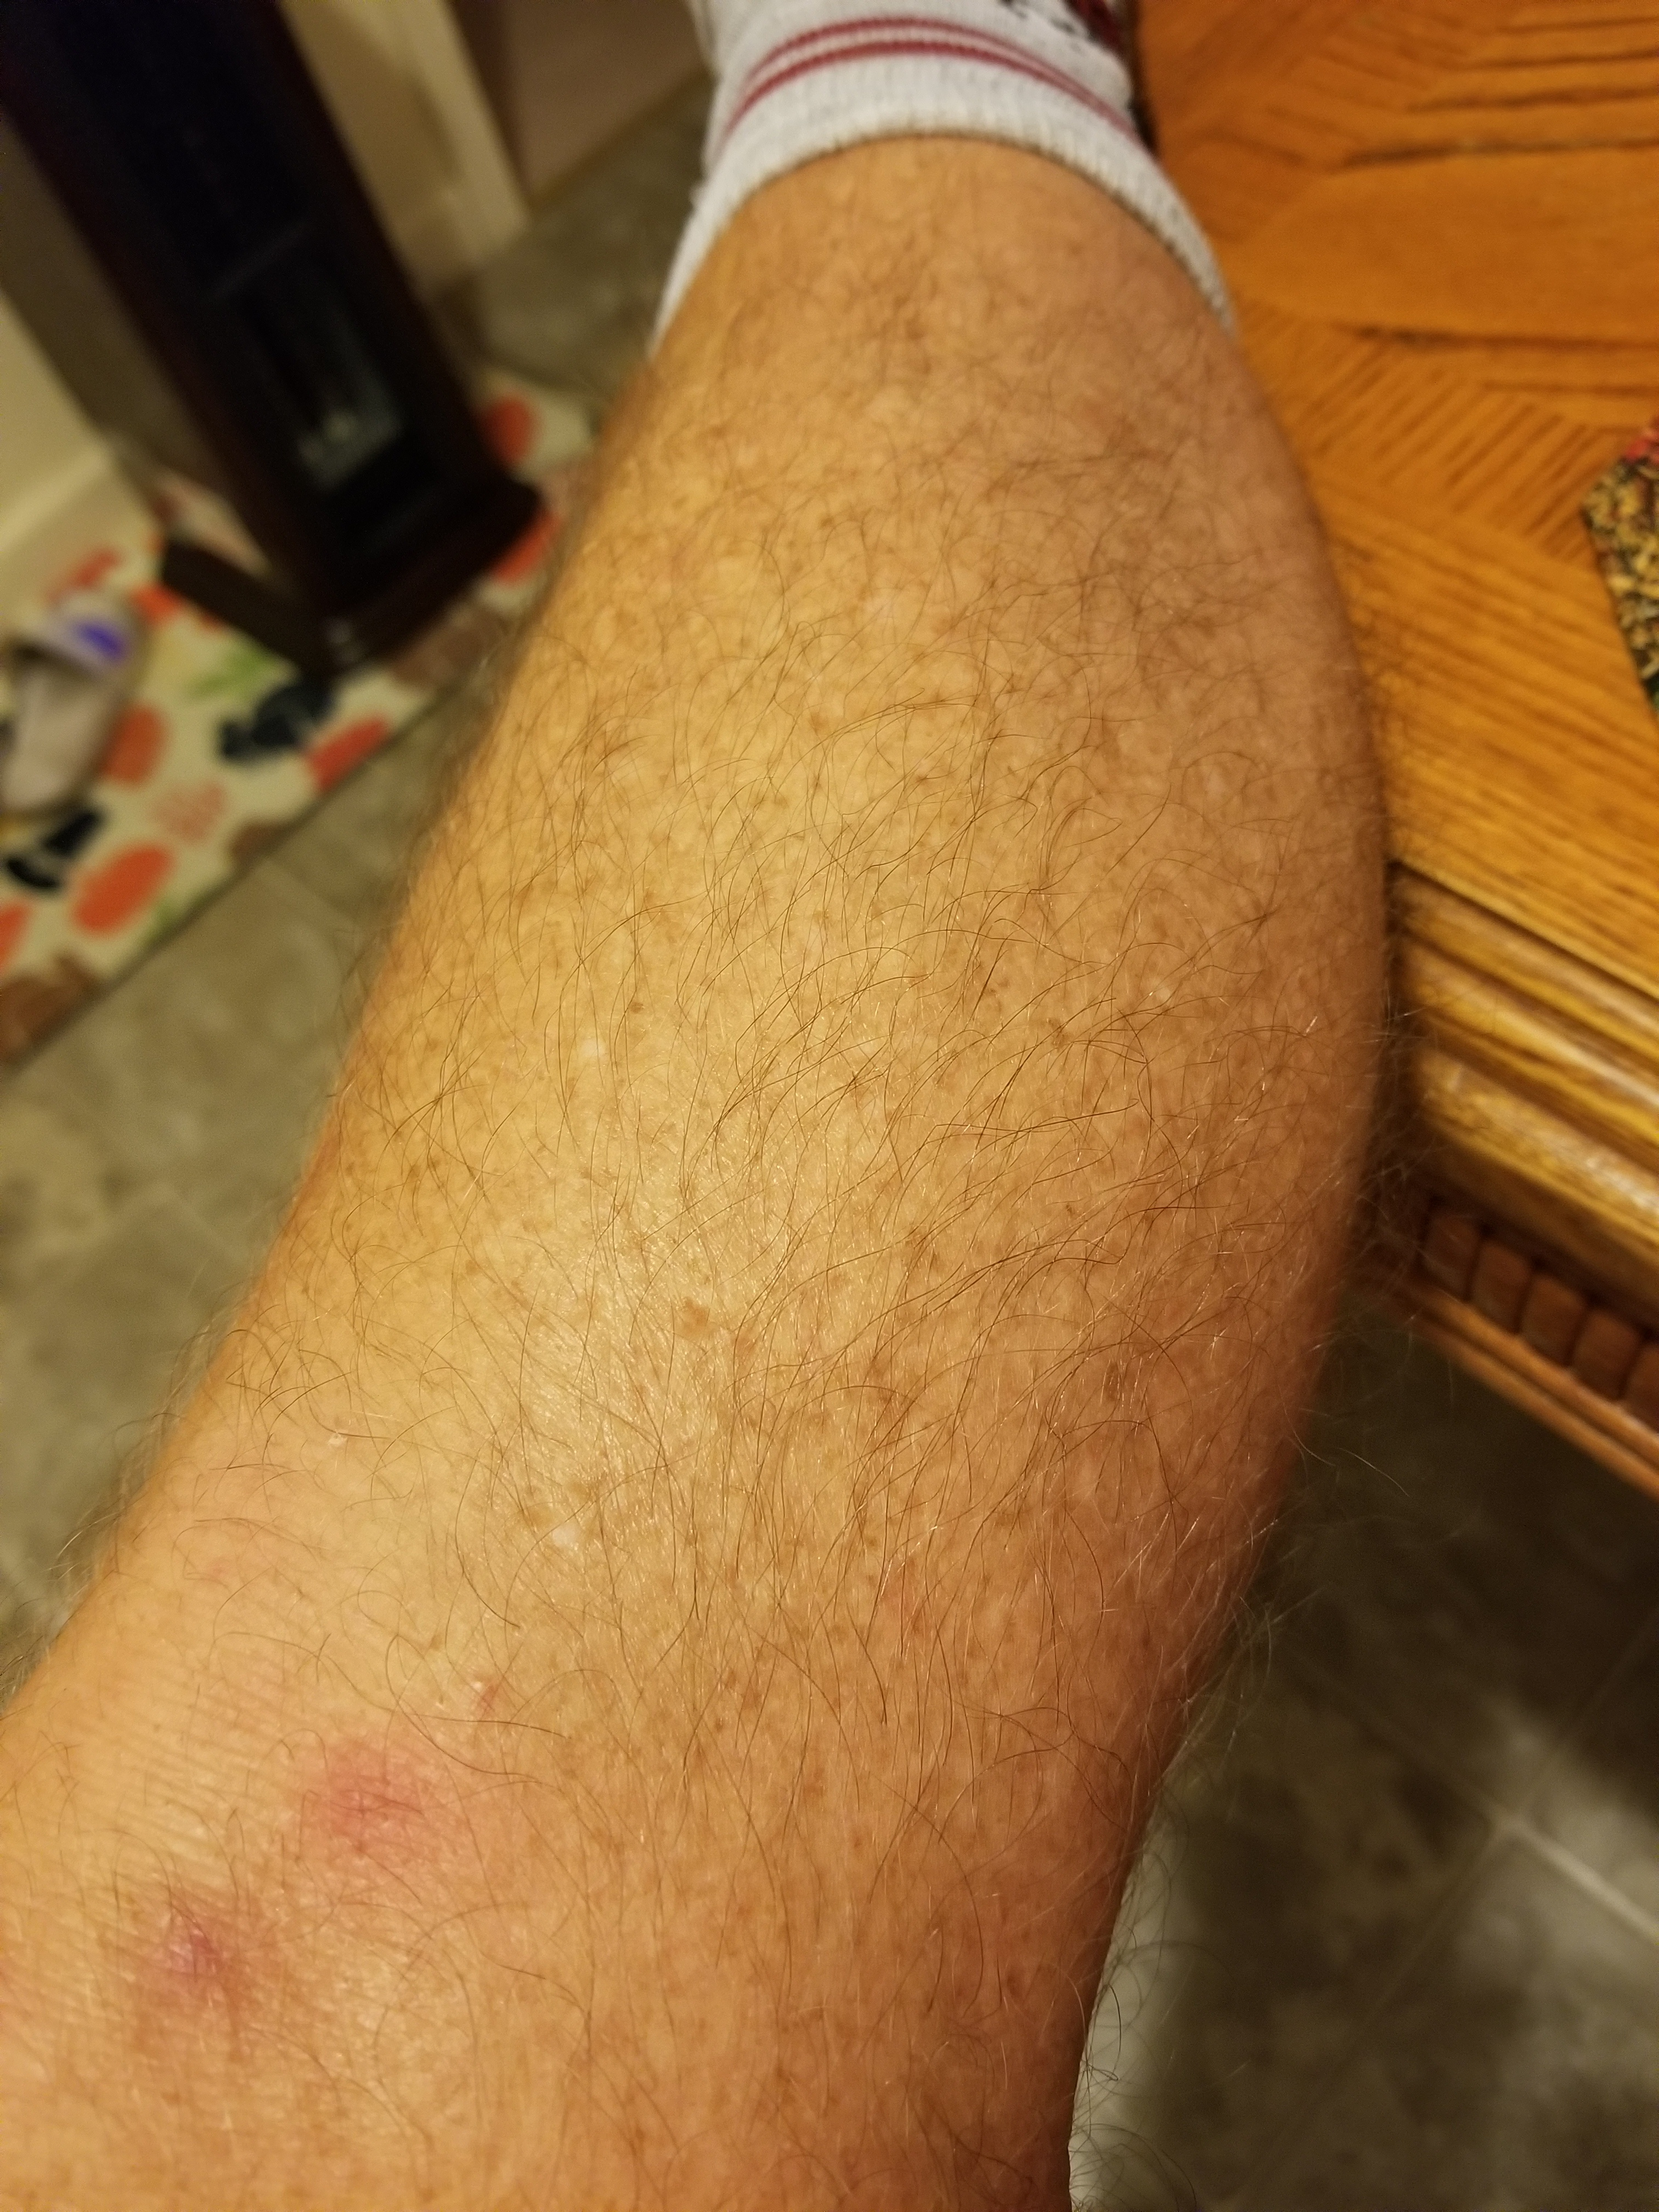 What Do You Think Of Guys Who Shave Their Legs? - Quora